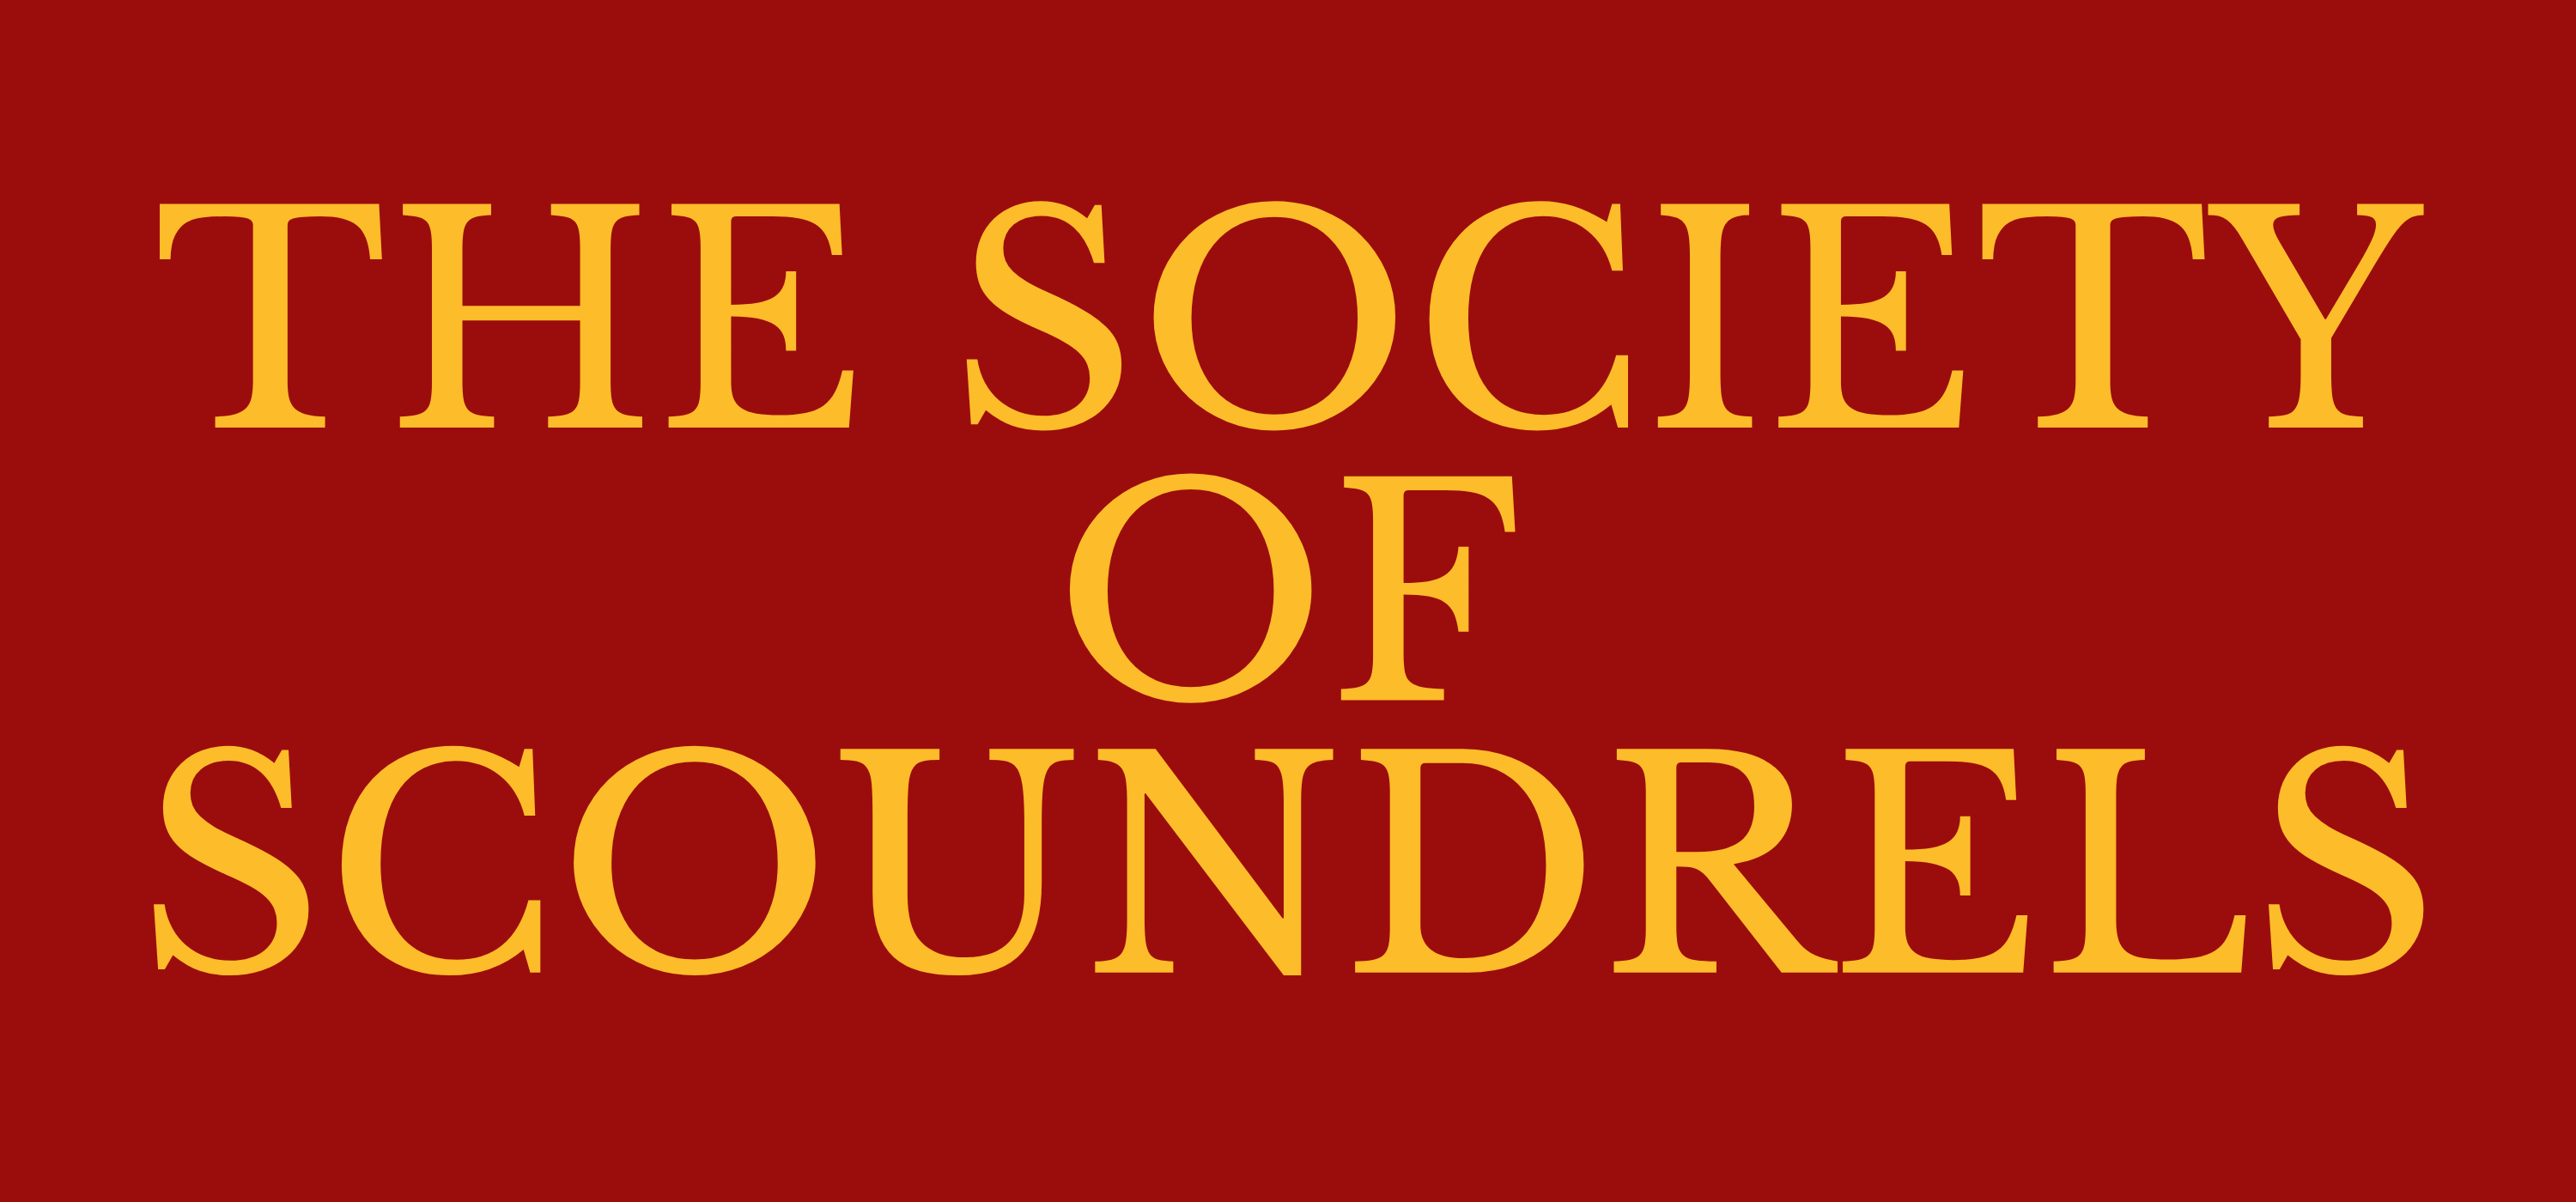 THE SOCIETY OF SCOUNDRELS PODCAST